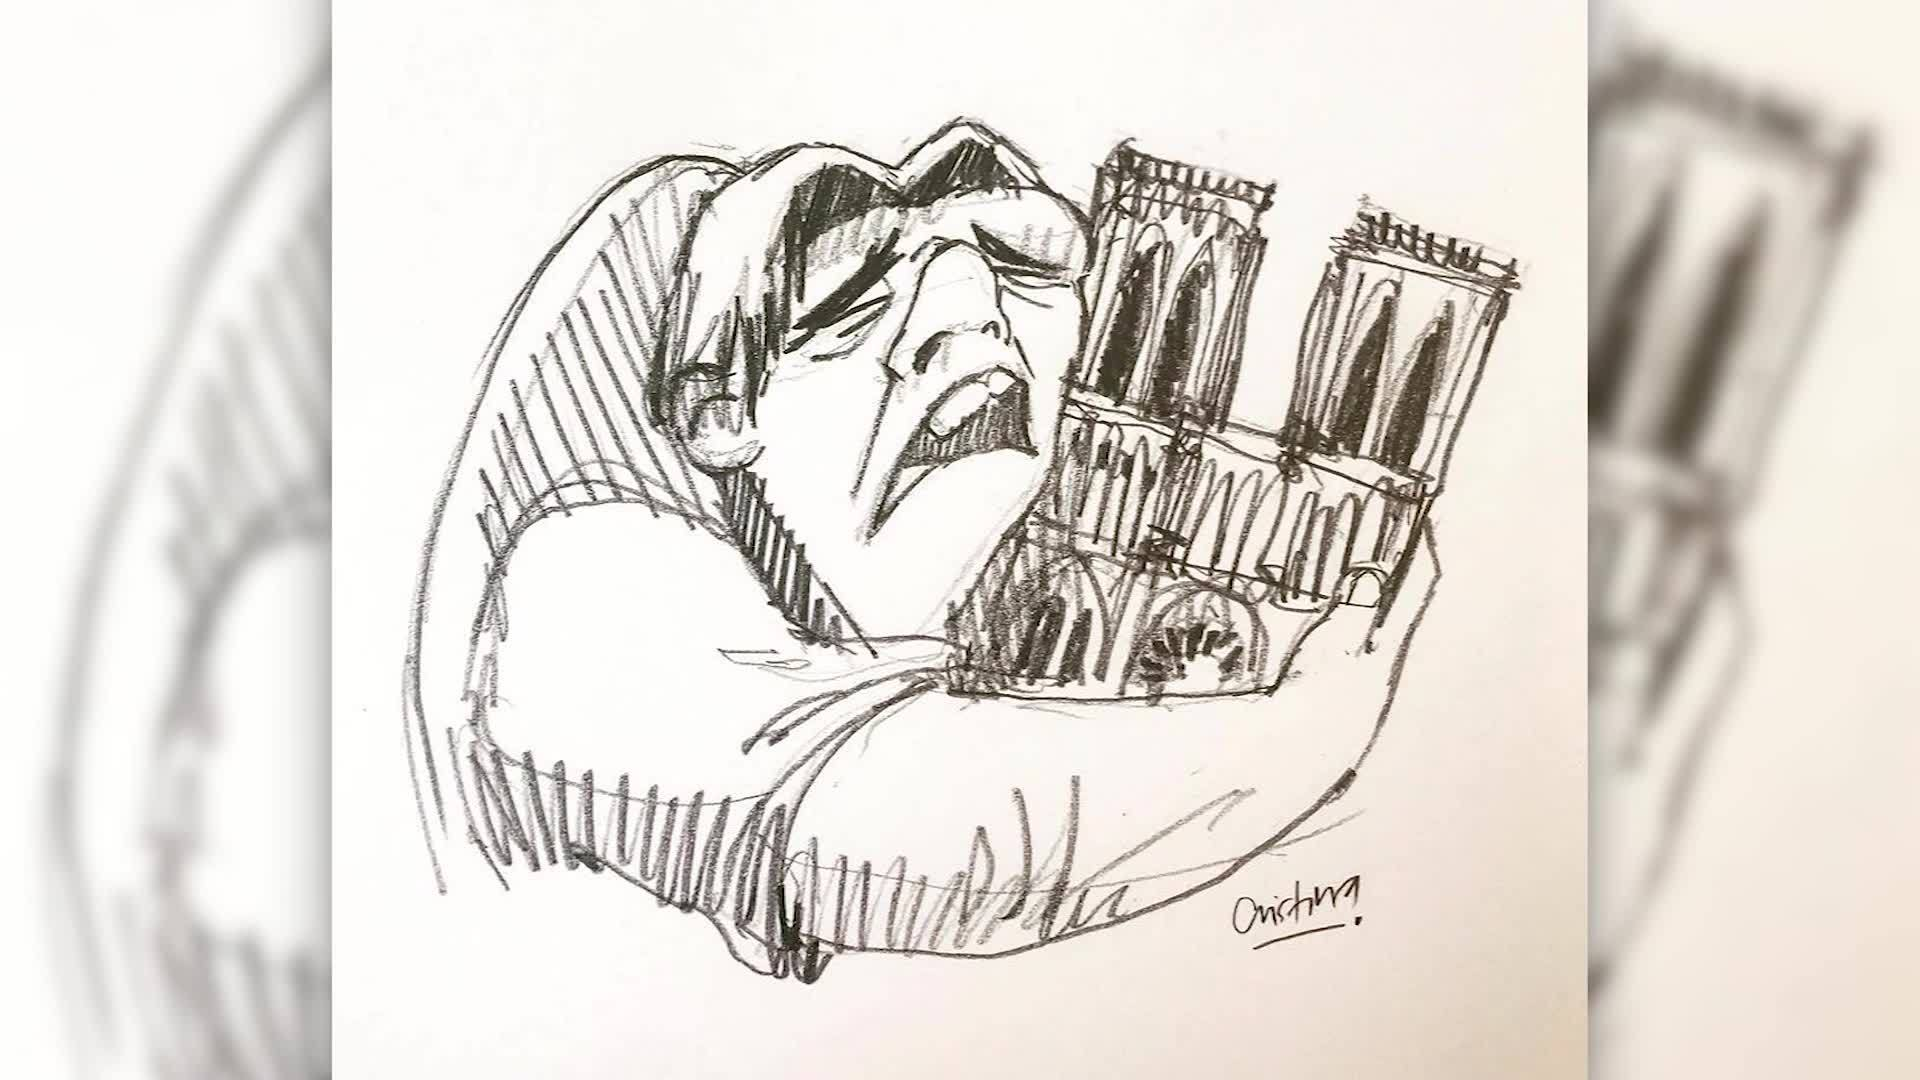 VIDEO: Notre Dame Fire: Artist pays tribute to cathedral with drawing